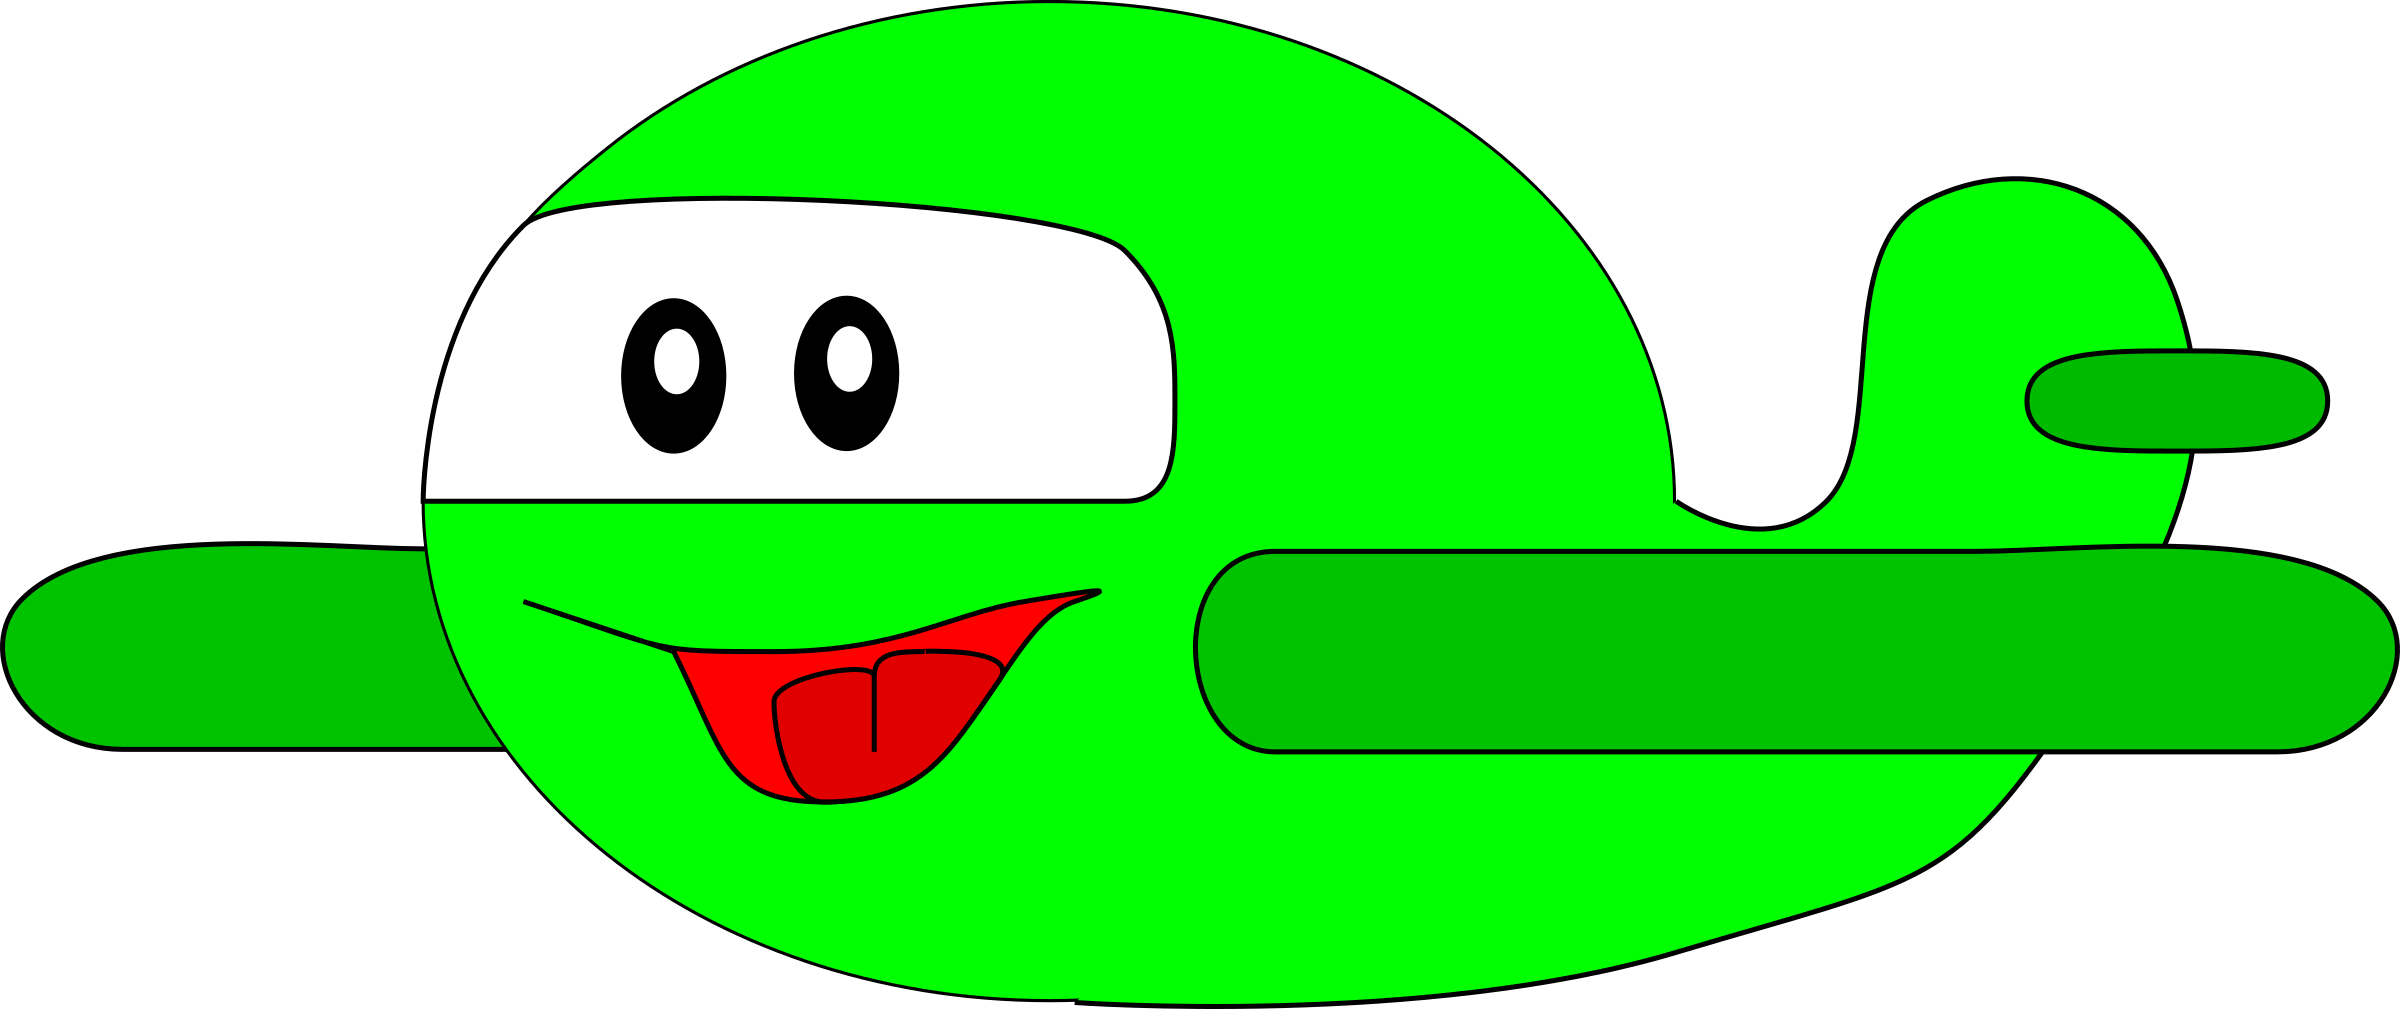 Clipart happy airplane. Big image png